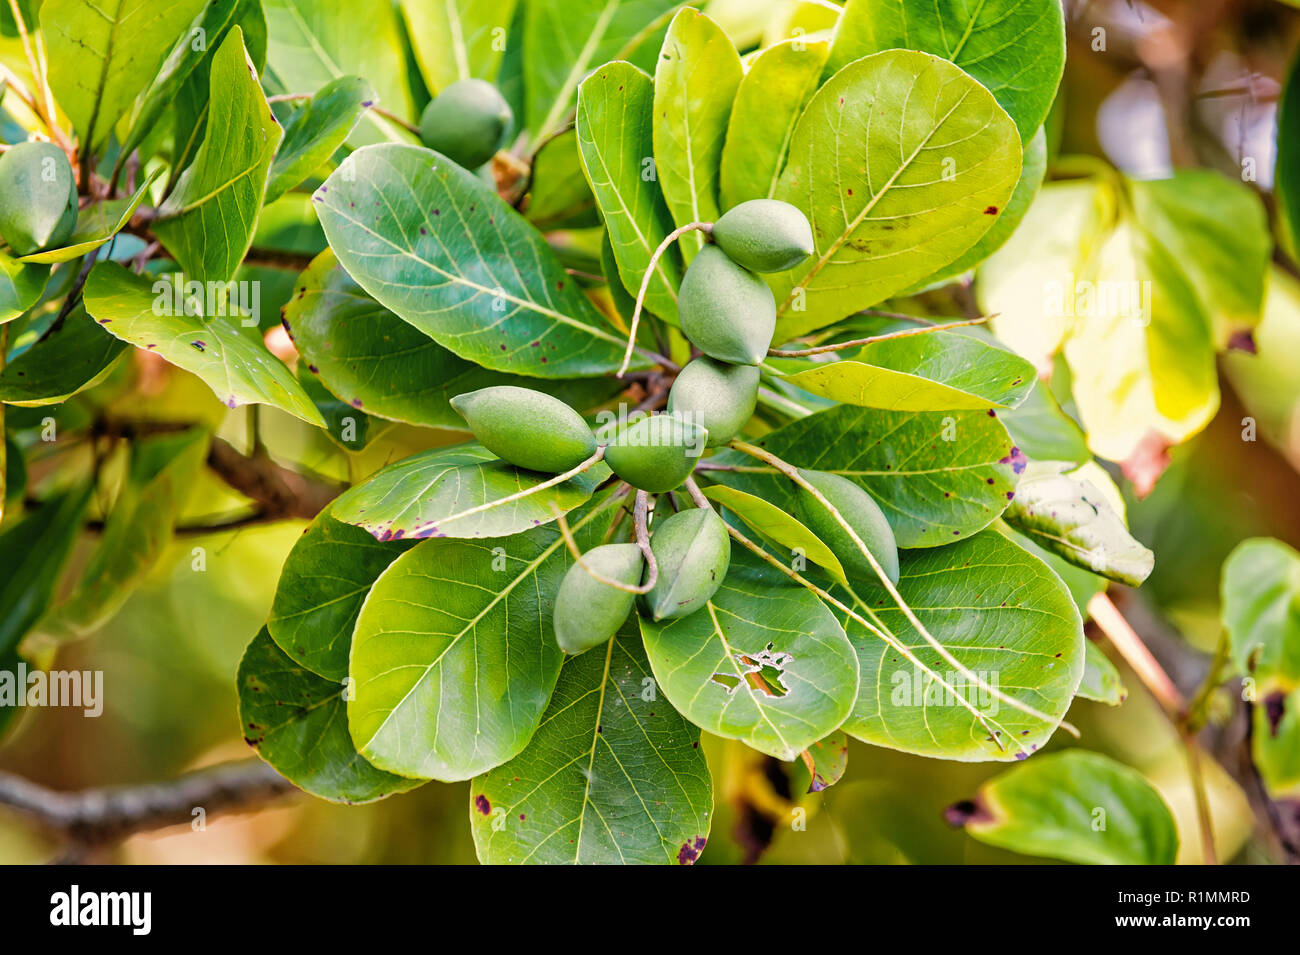 almond Seed pods of green color on tree in rainforest of Honduras on blurred natural background. Eco park concept. Wildlife and nature. - Stock Image